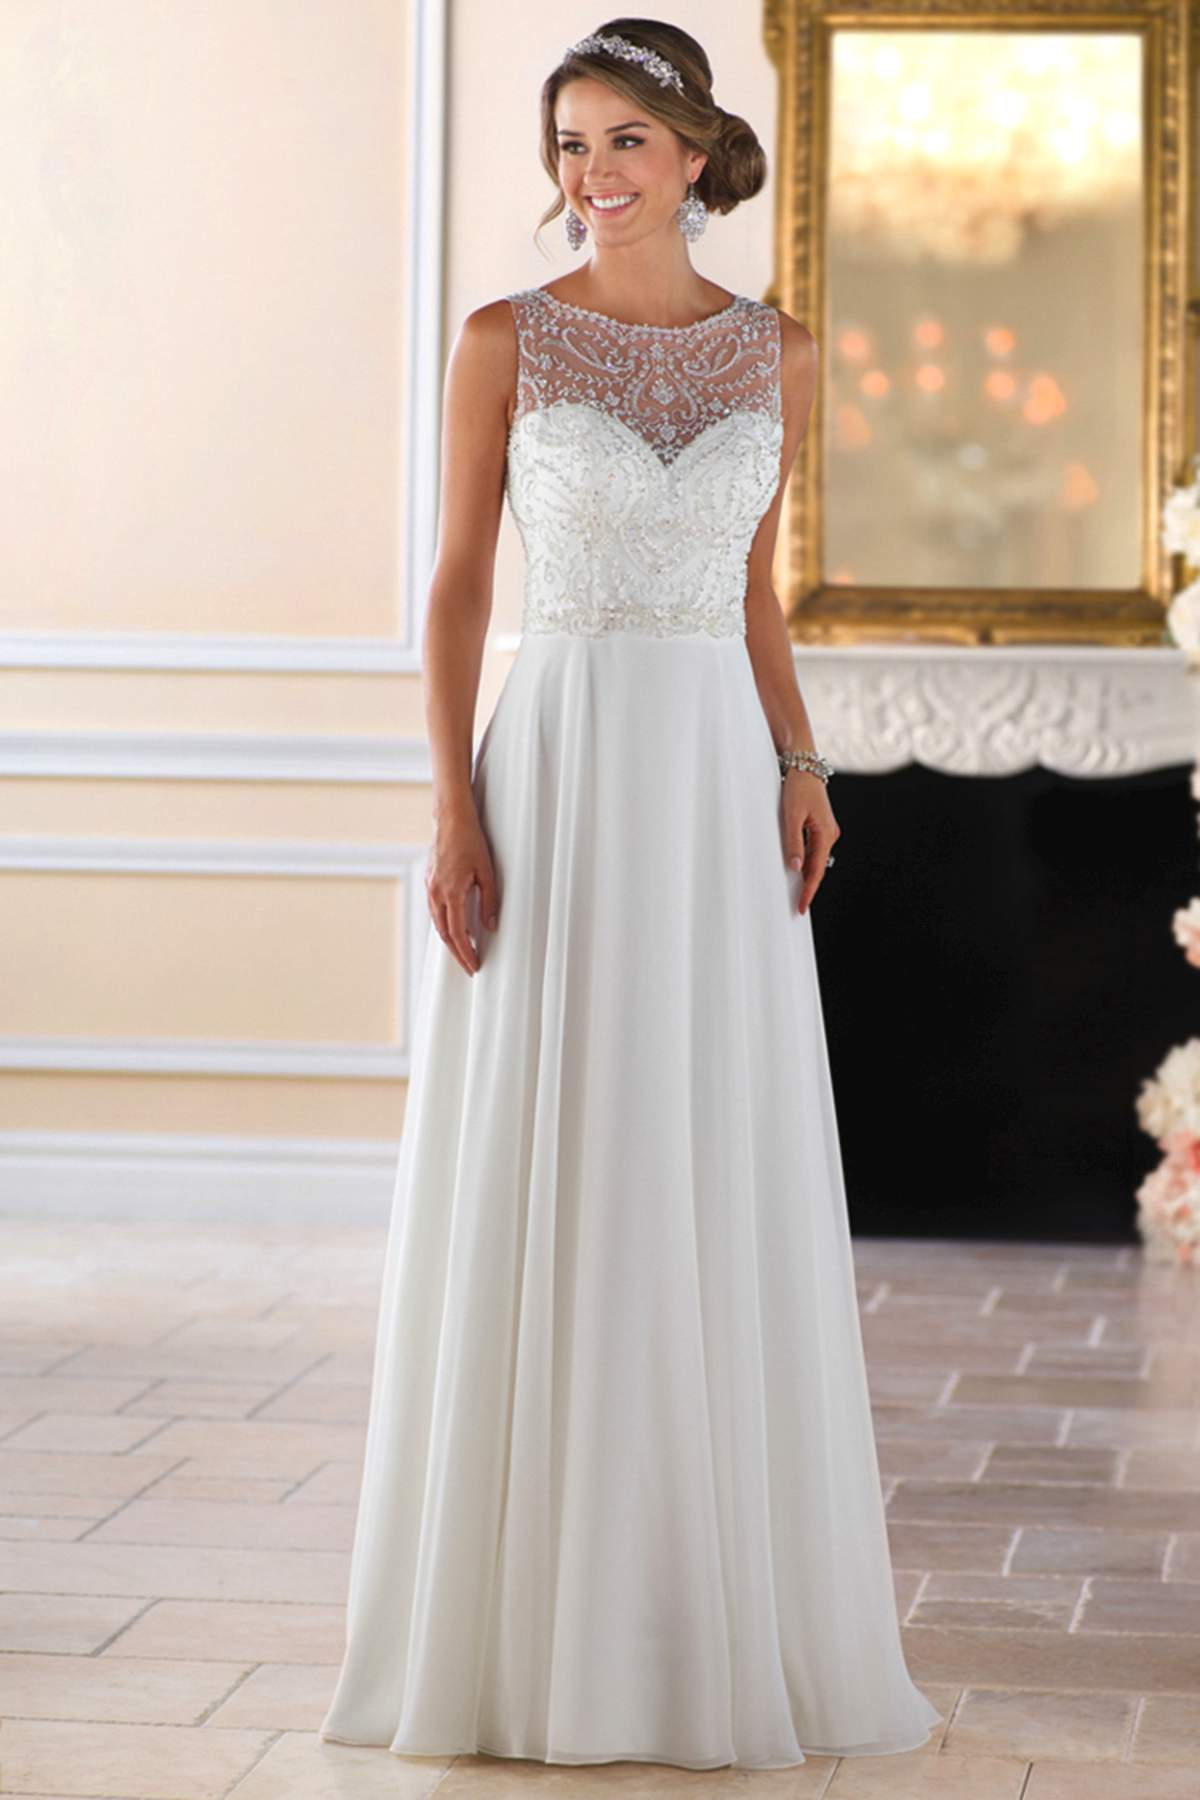 28b6abc07b6 Style 6423 by Stella York - Find Your Dream Dress